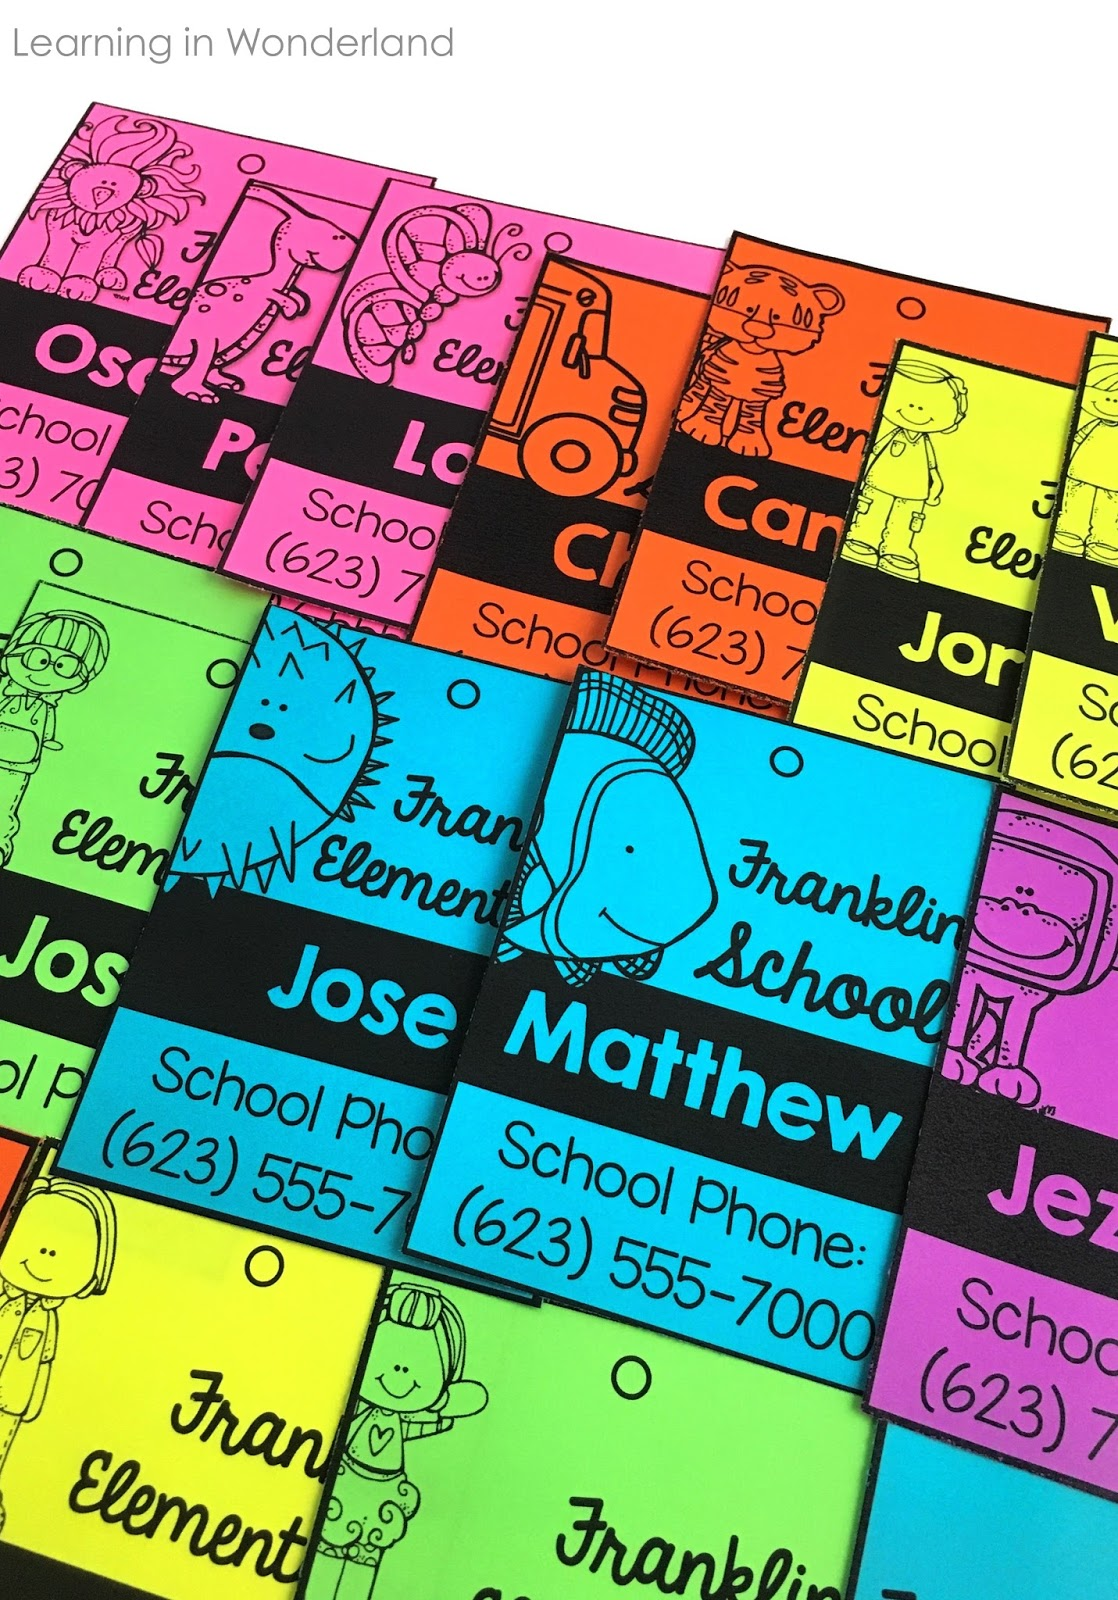 These name tags will help your students stand out while on field trips! They also make great keepsakes for parents!